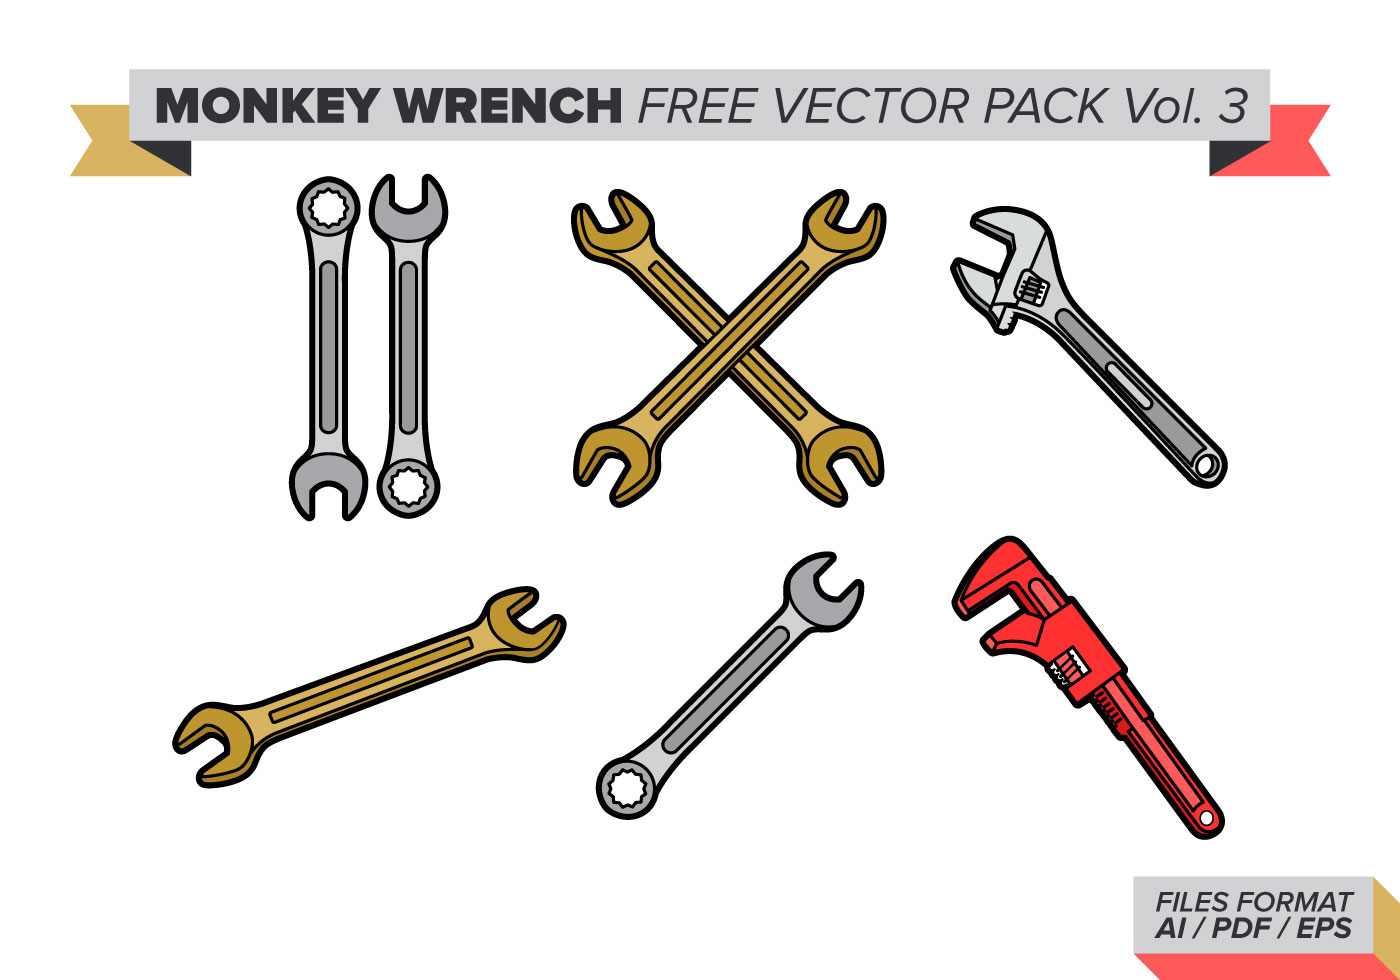 Gear clipart vector wrench free to use vector transparent stock Wrench Free Vector Art - (8,568 Free Downloads) vector transparent stock